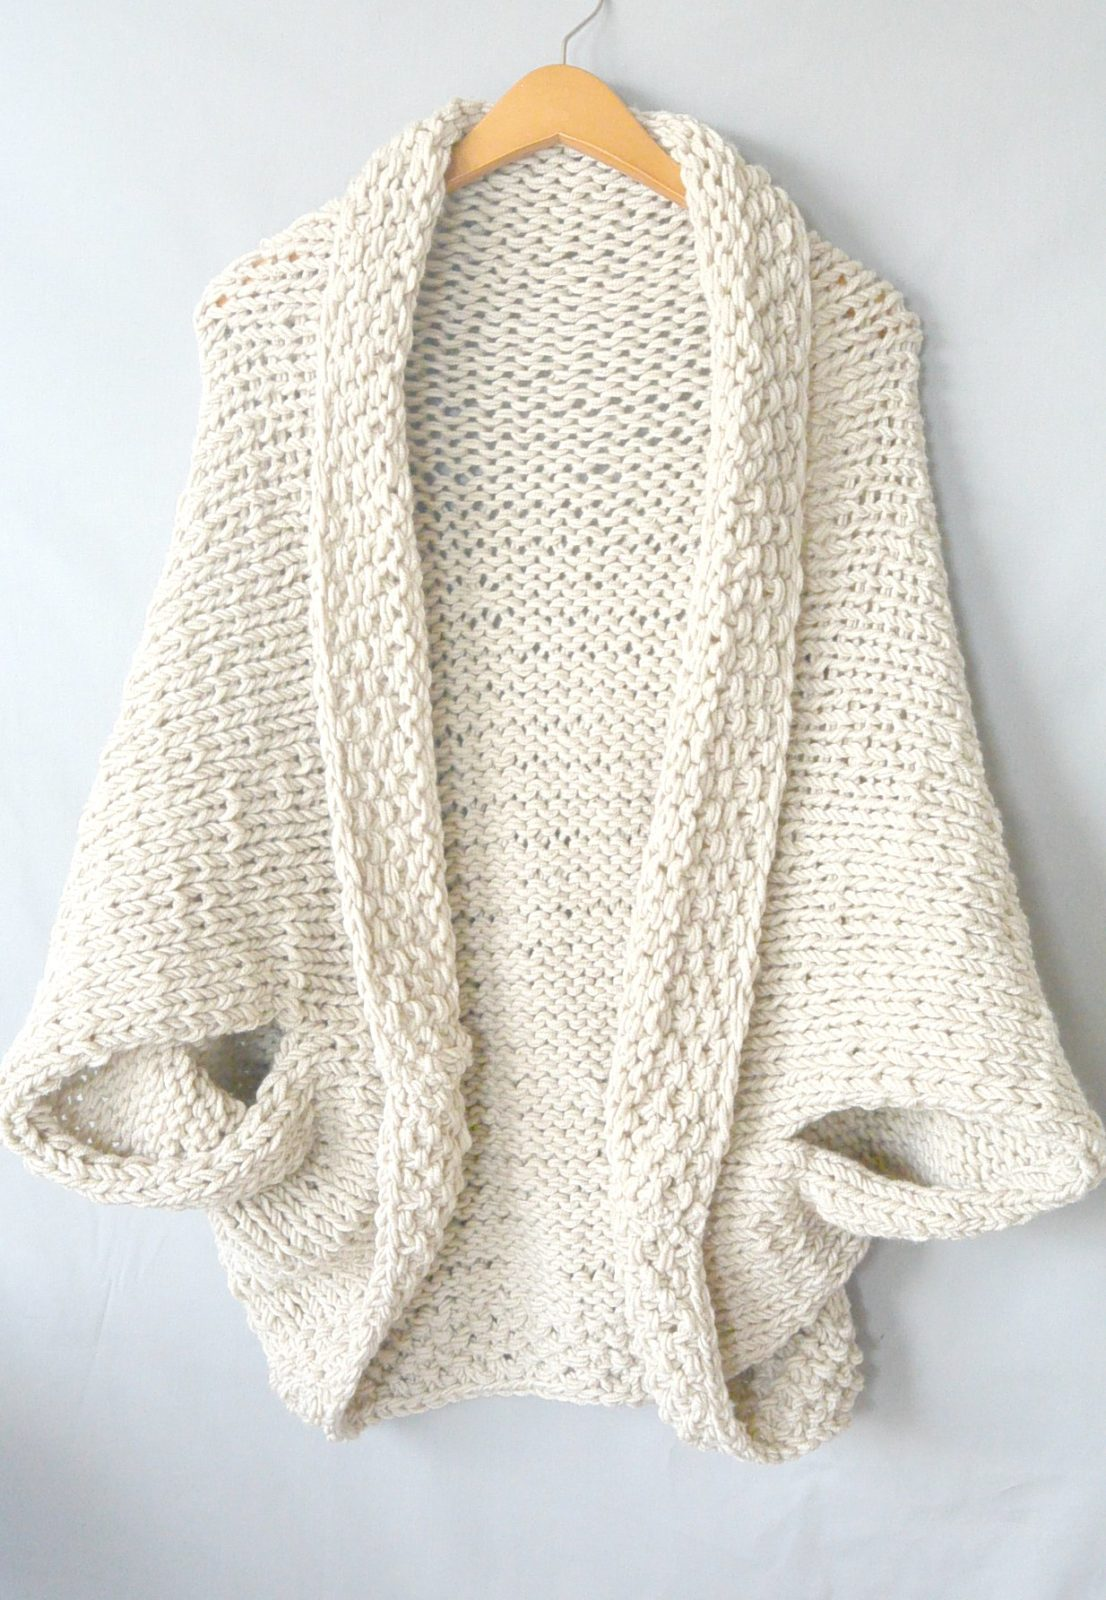 Pattern Knit Sweater : Easy Knit Blanket Sweater Pattern   Mama In A Stitch